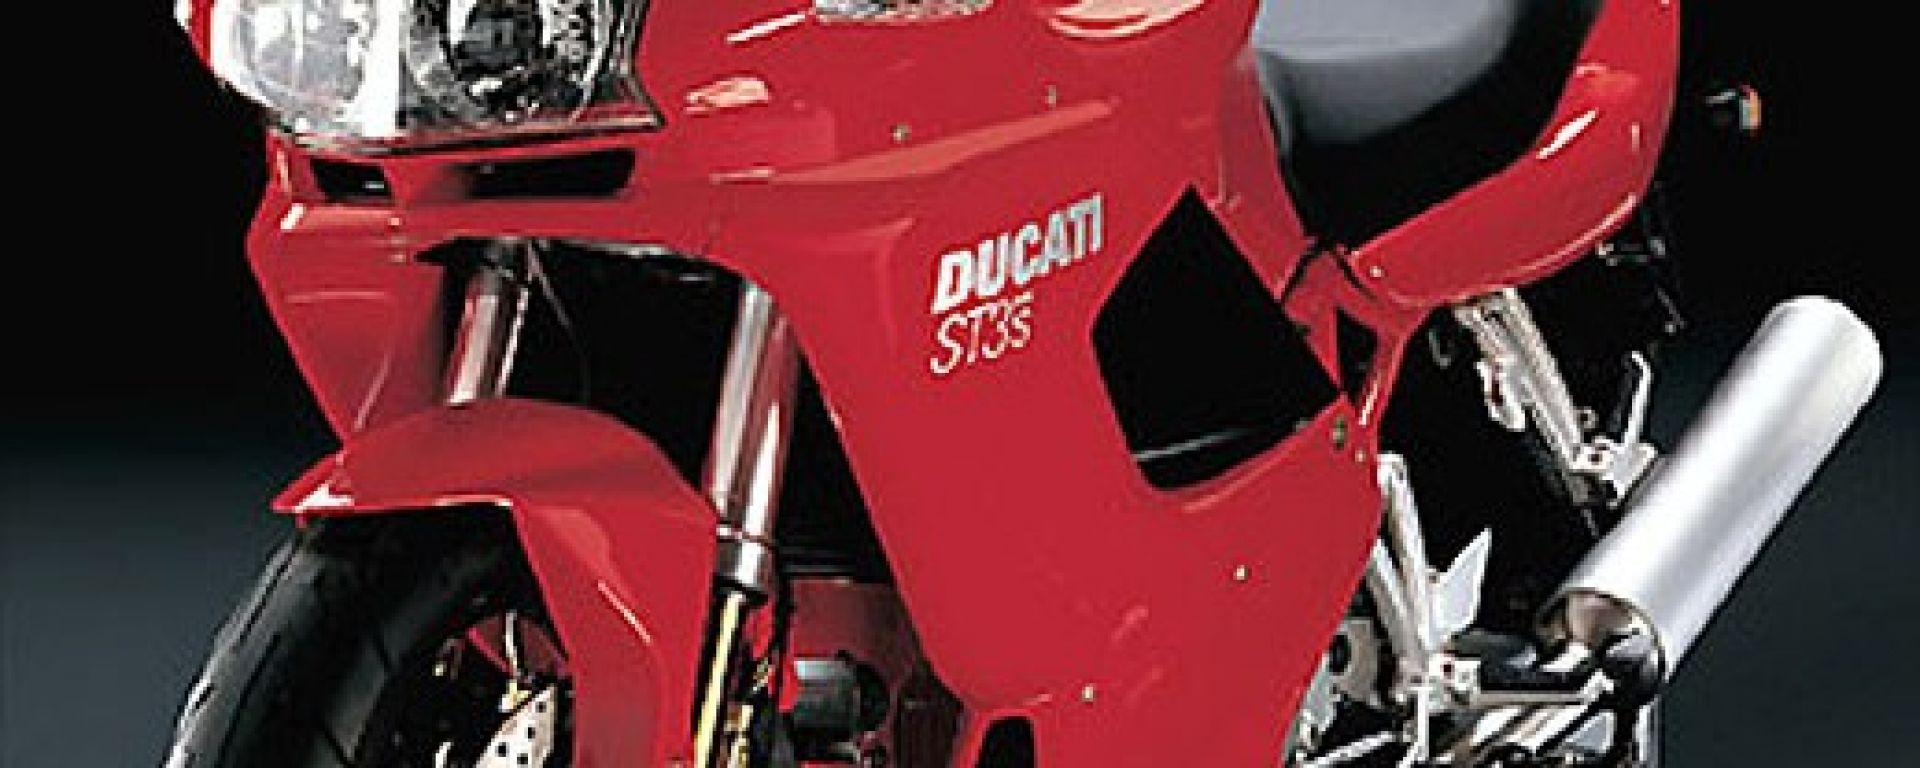 Ducati ST3s ABS